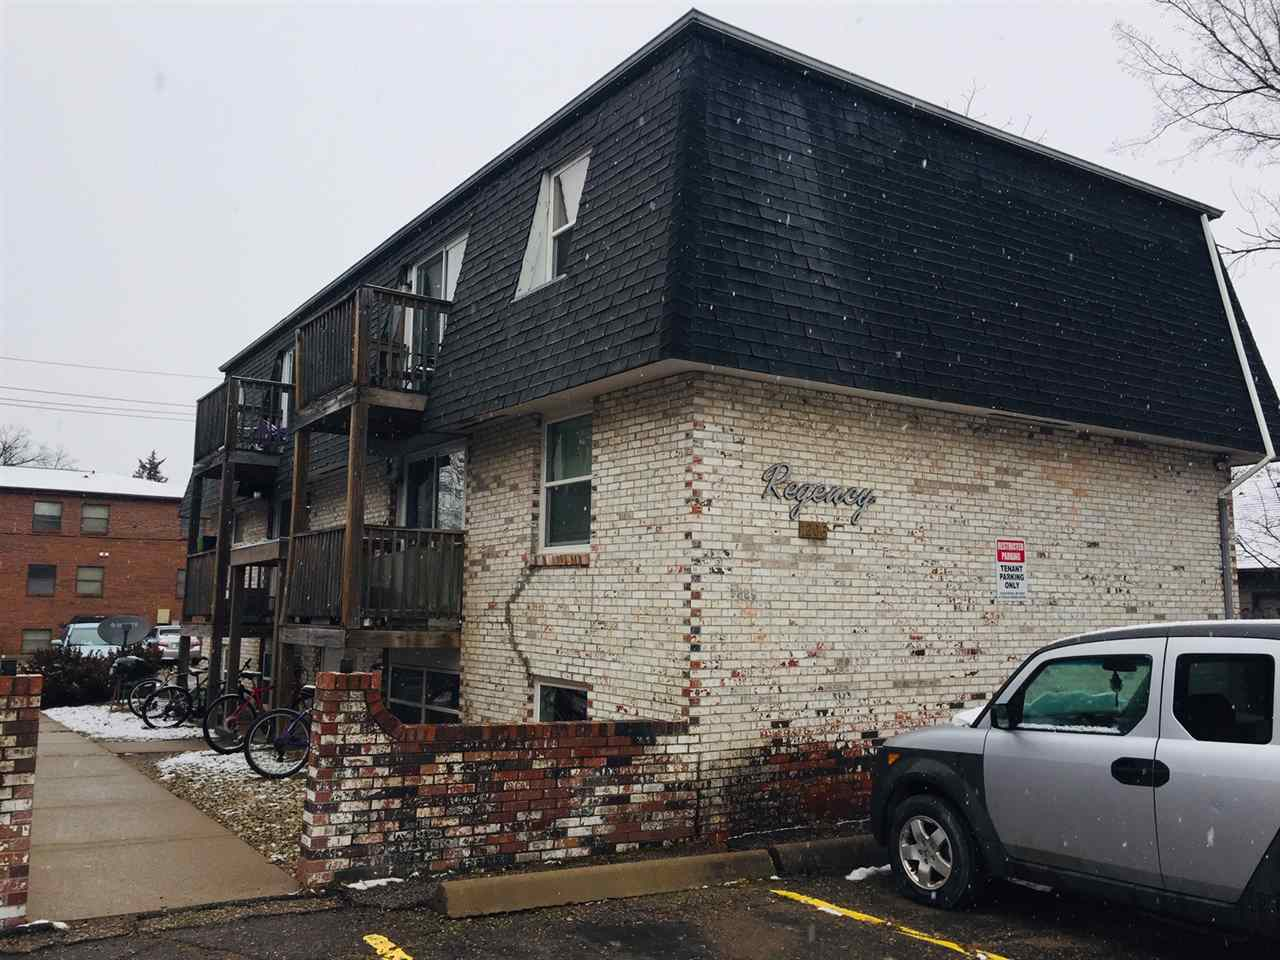 Here is your chance to own a great investment property in a prime location right next to Kansas State University and Aggieville. All 6 units are 1 bed 1 bath.  Owner pays water and trash, tenants pay electric.  Each unit has a separate meter.